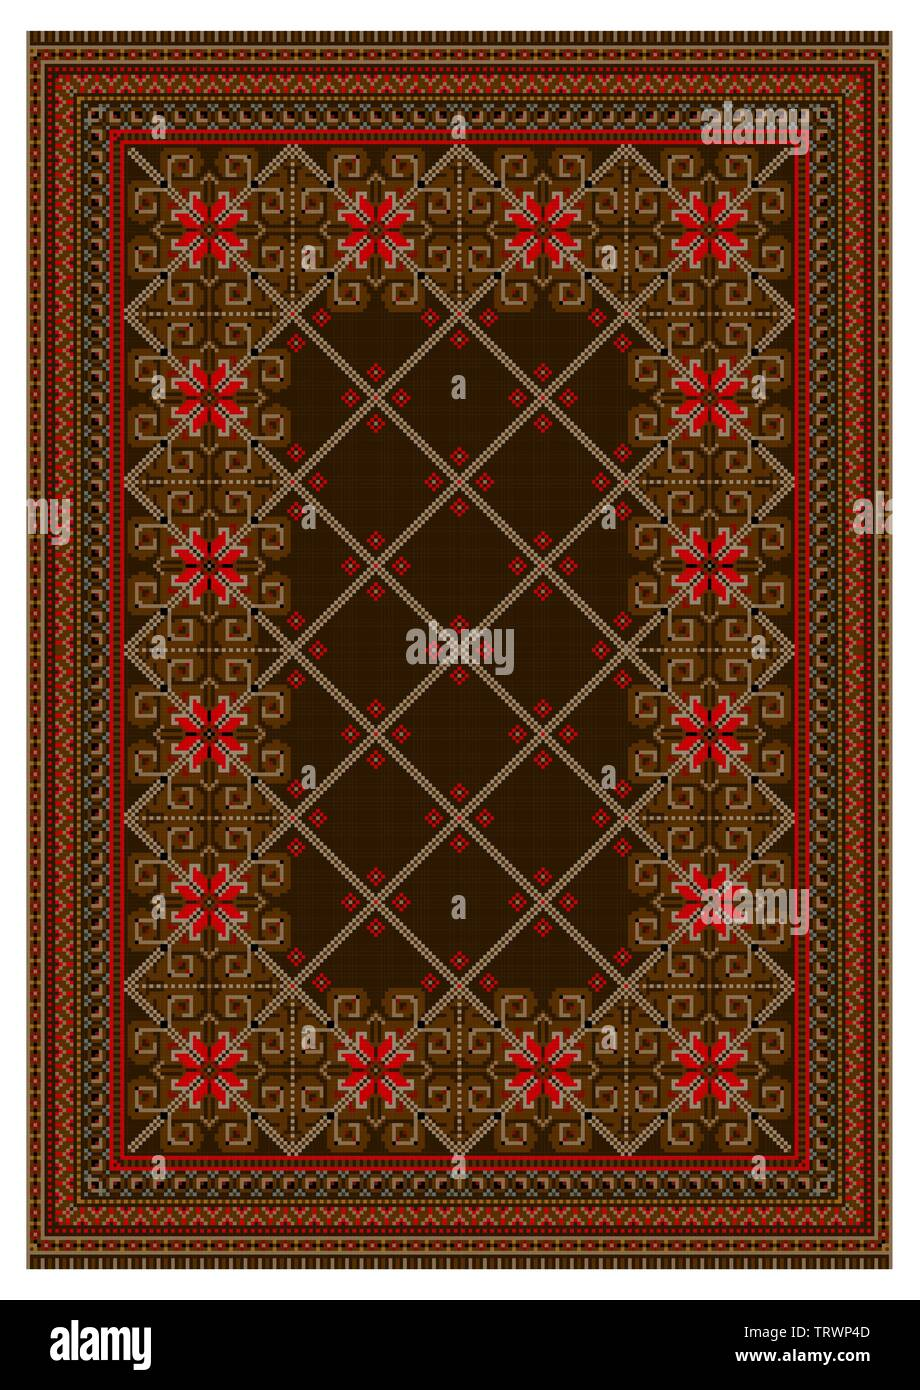 Pattern for old oriental carpet in brown and red colors with intersecting beige stripes run down the center on a white background - Stock Image